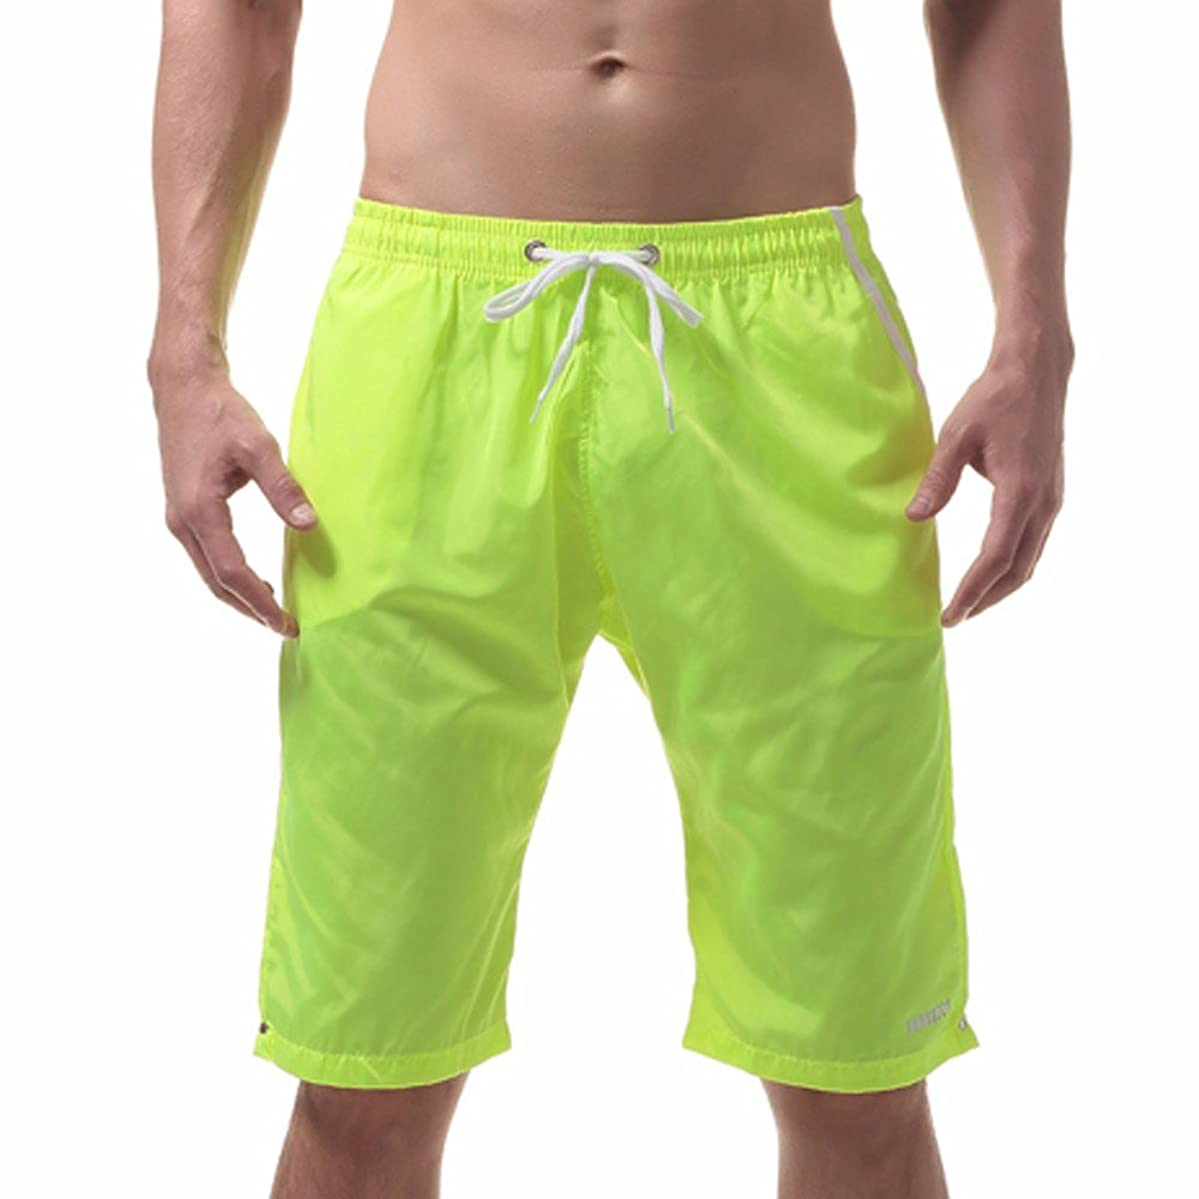 Men's Fashion Shorts, Sports Pants Swim Trunks Quick Dry Beach Surfing Running Swimming Shorts with Pockets